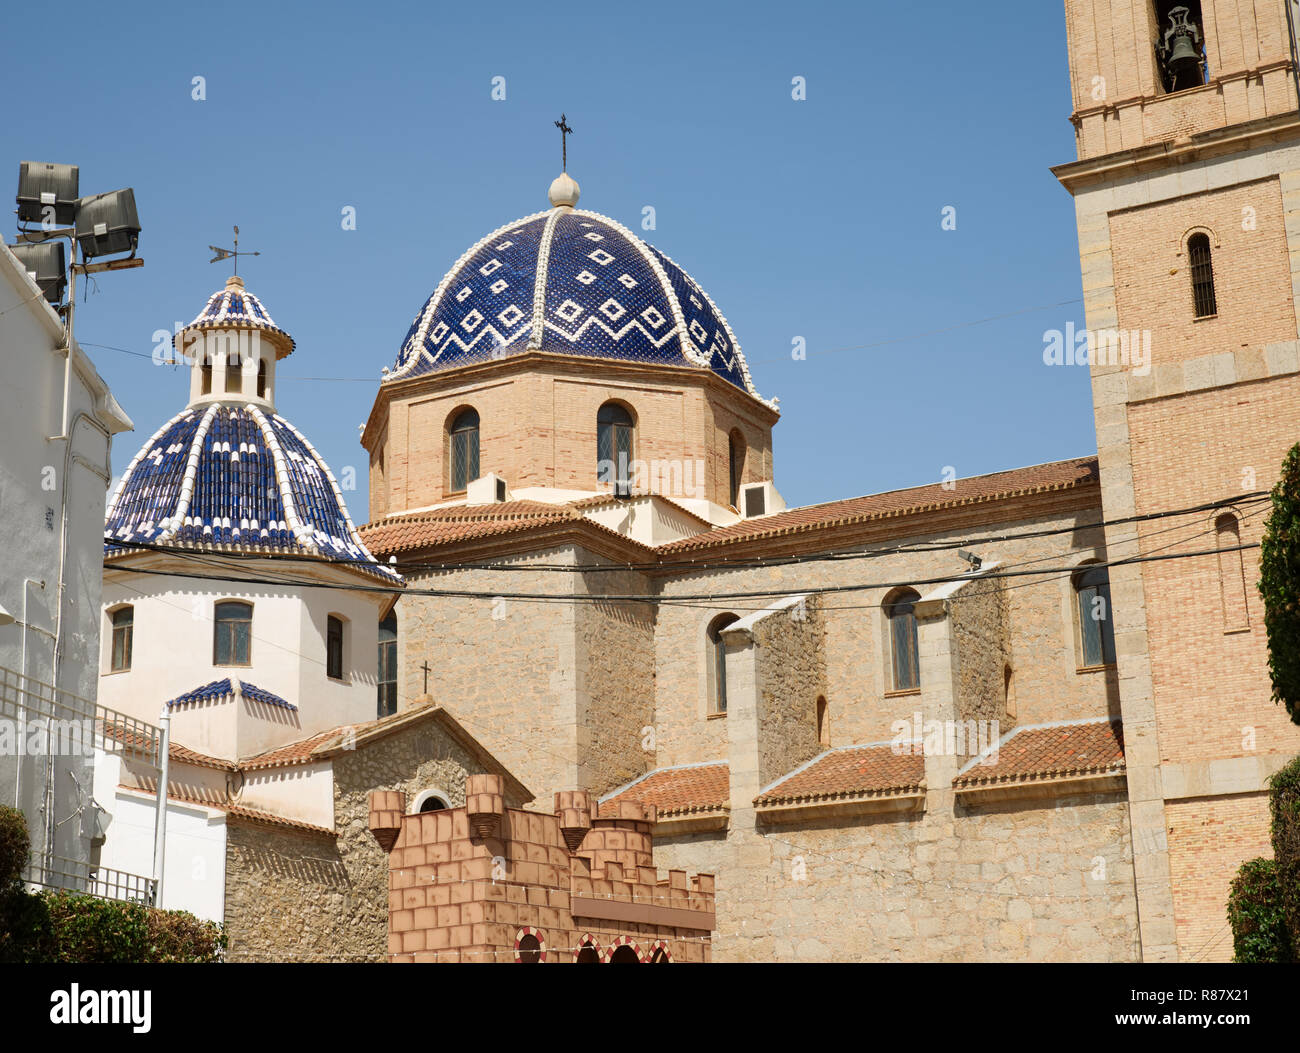 The Church of La Mare de Déu del Consol ('Our Lady of Solace'), Altea, Province of Alicante, Spain. - Stock Image